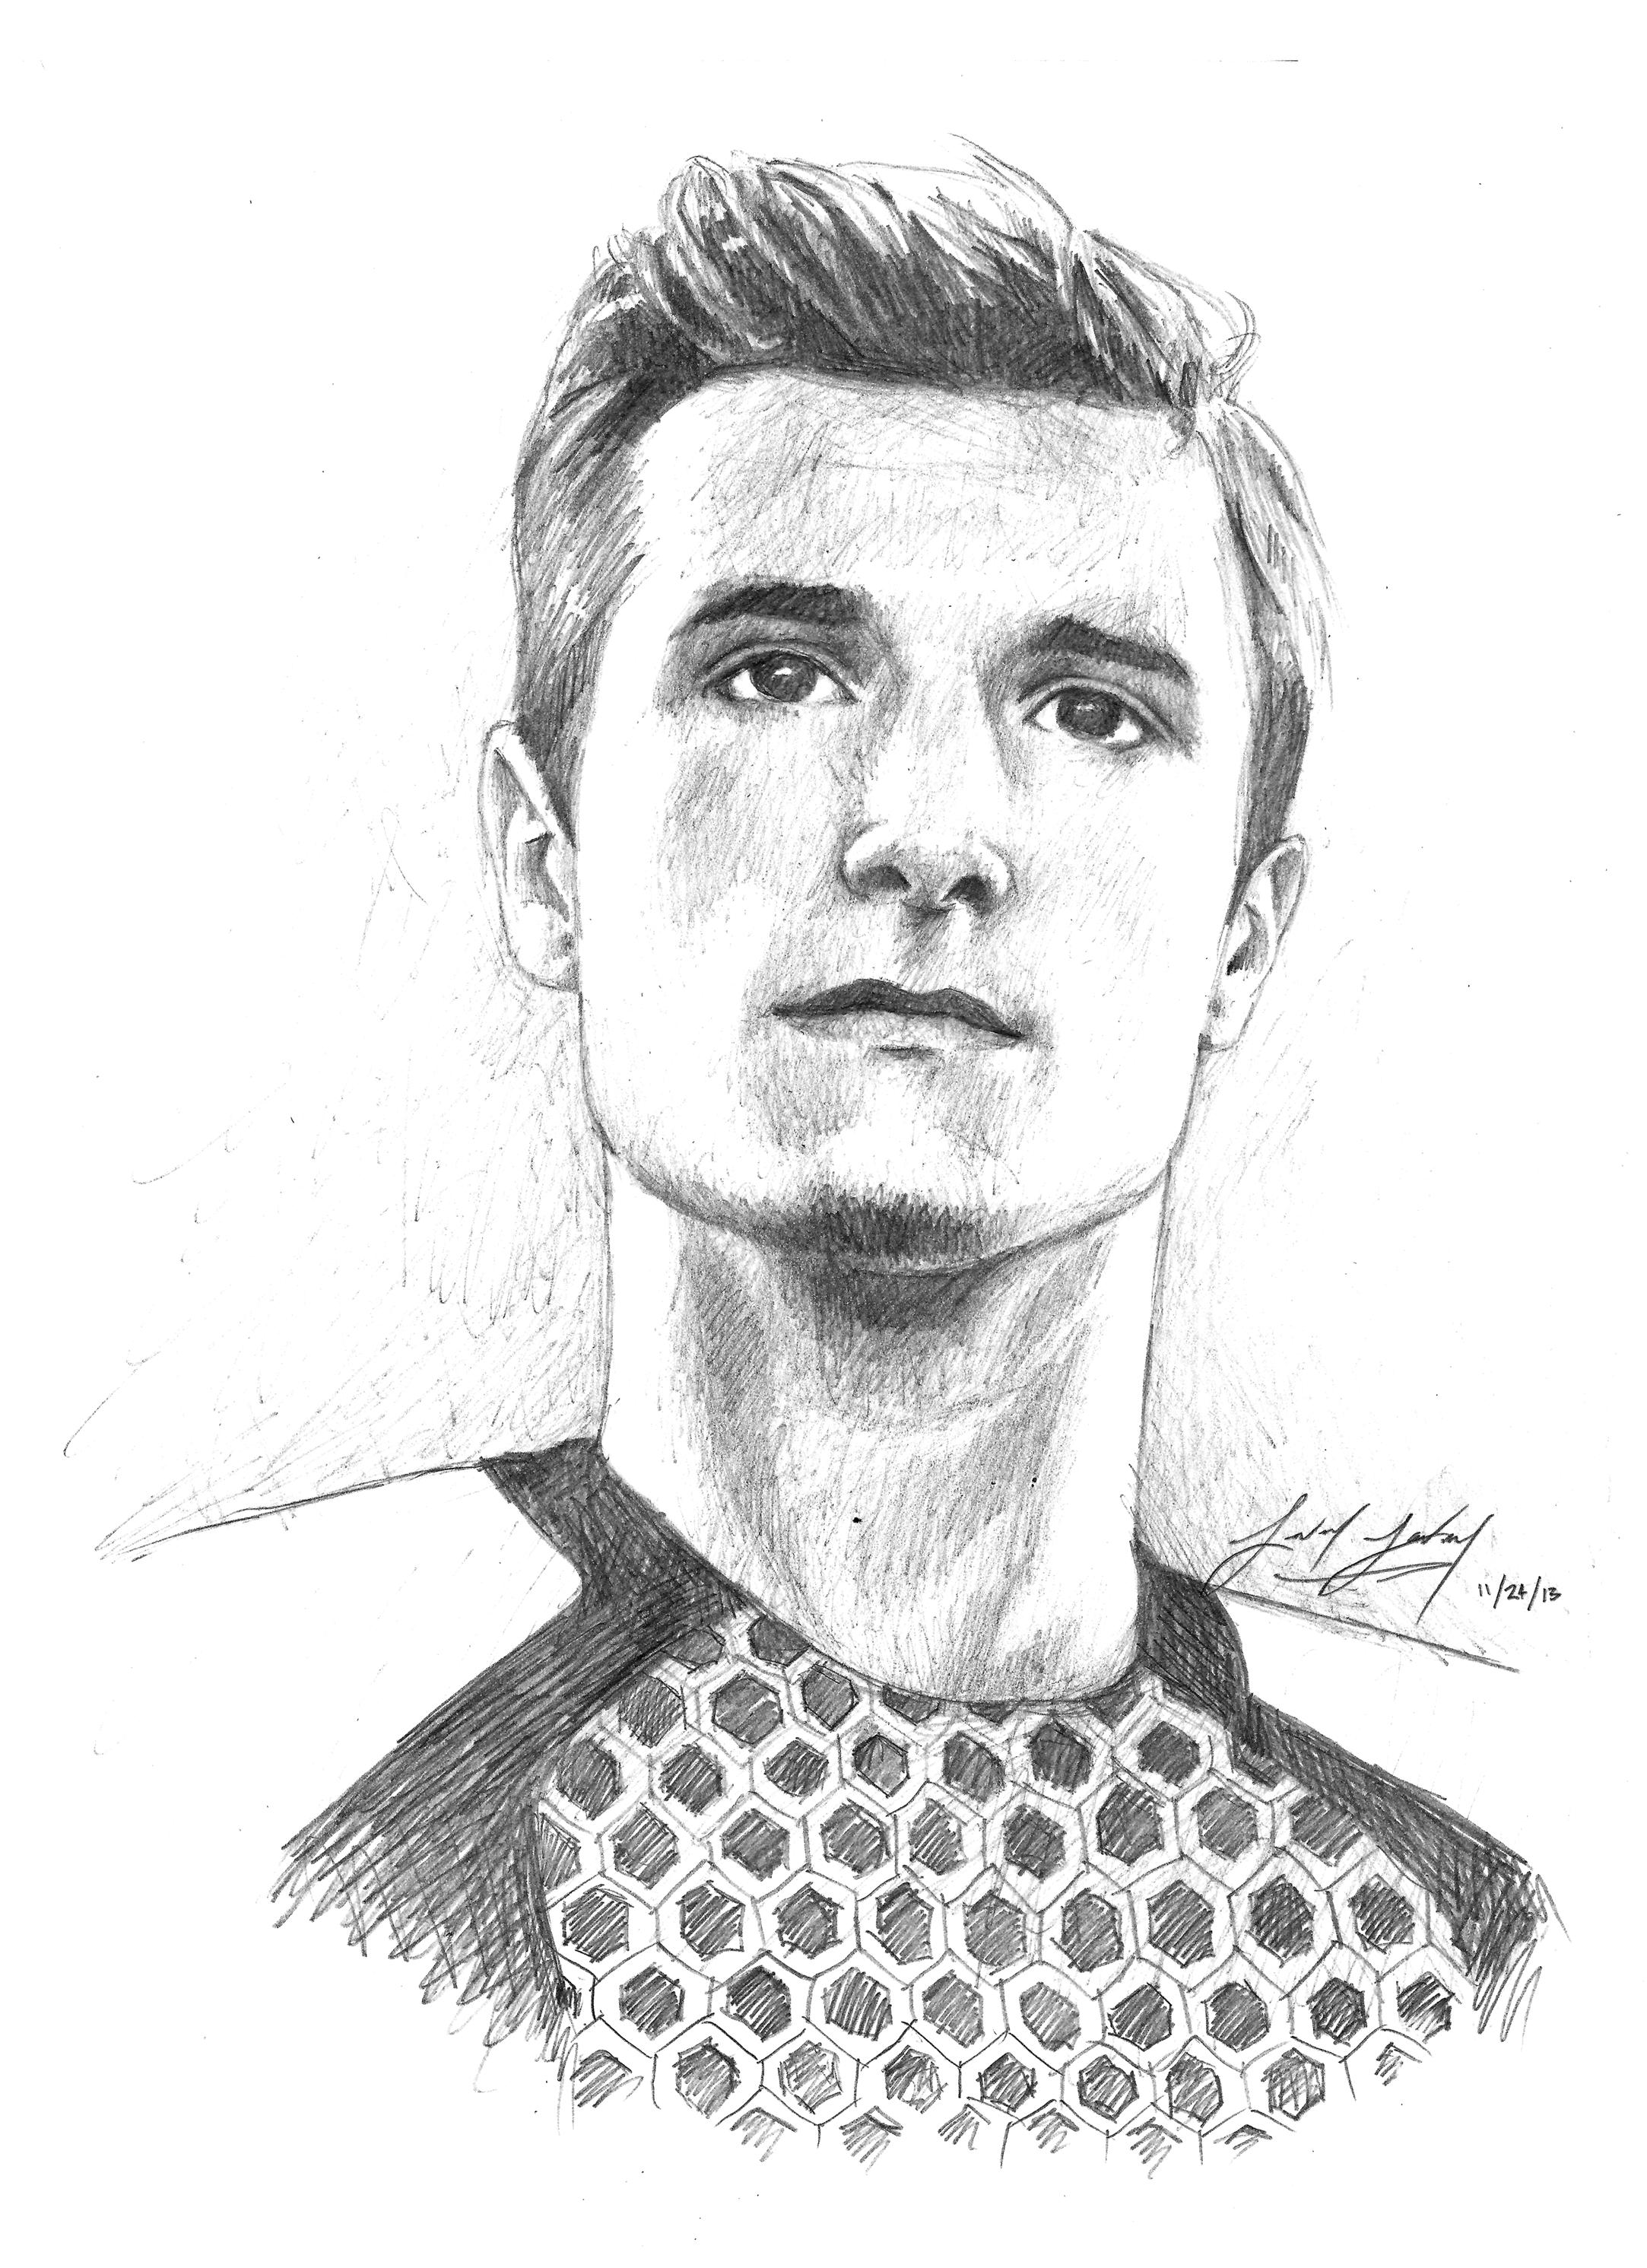 josh hutcherson as peeta mellark by friedchicken365 josh hutcherson as peeta mellark by friedchicken365